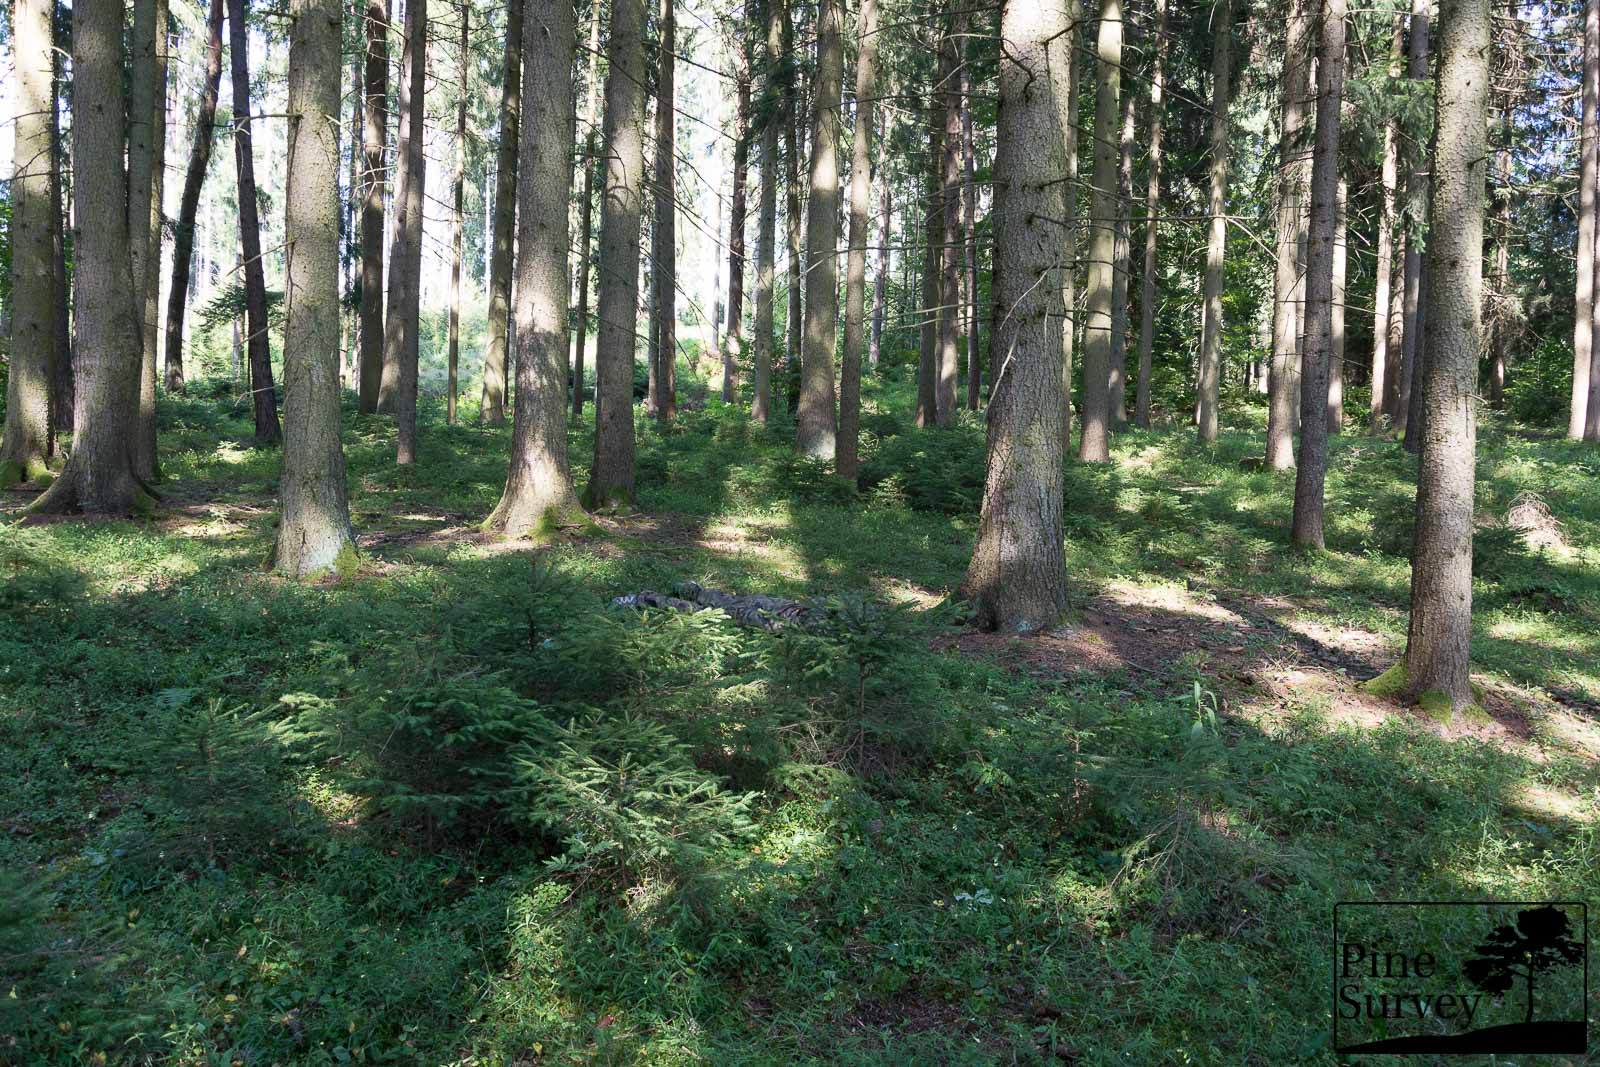 PL Woodland in the prone position - wide angle